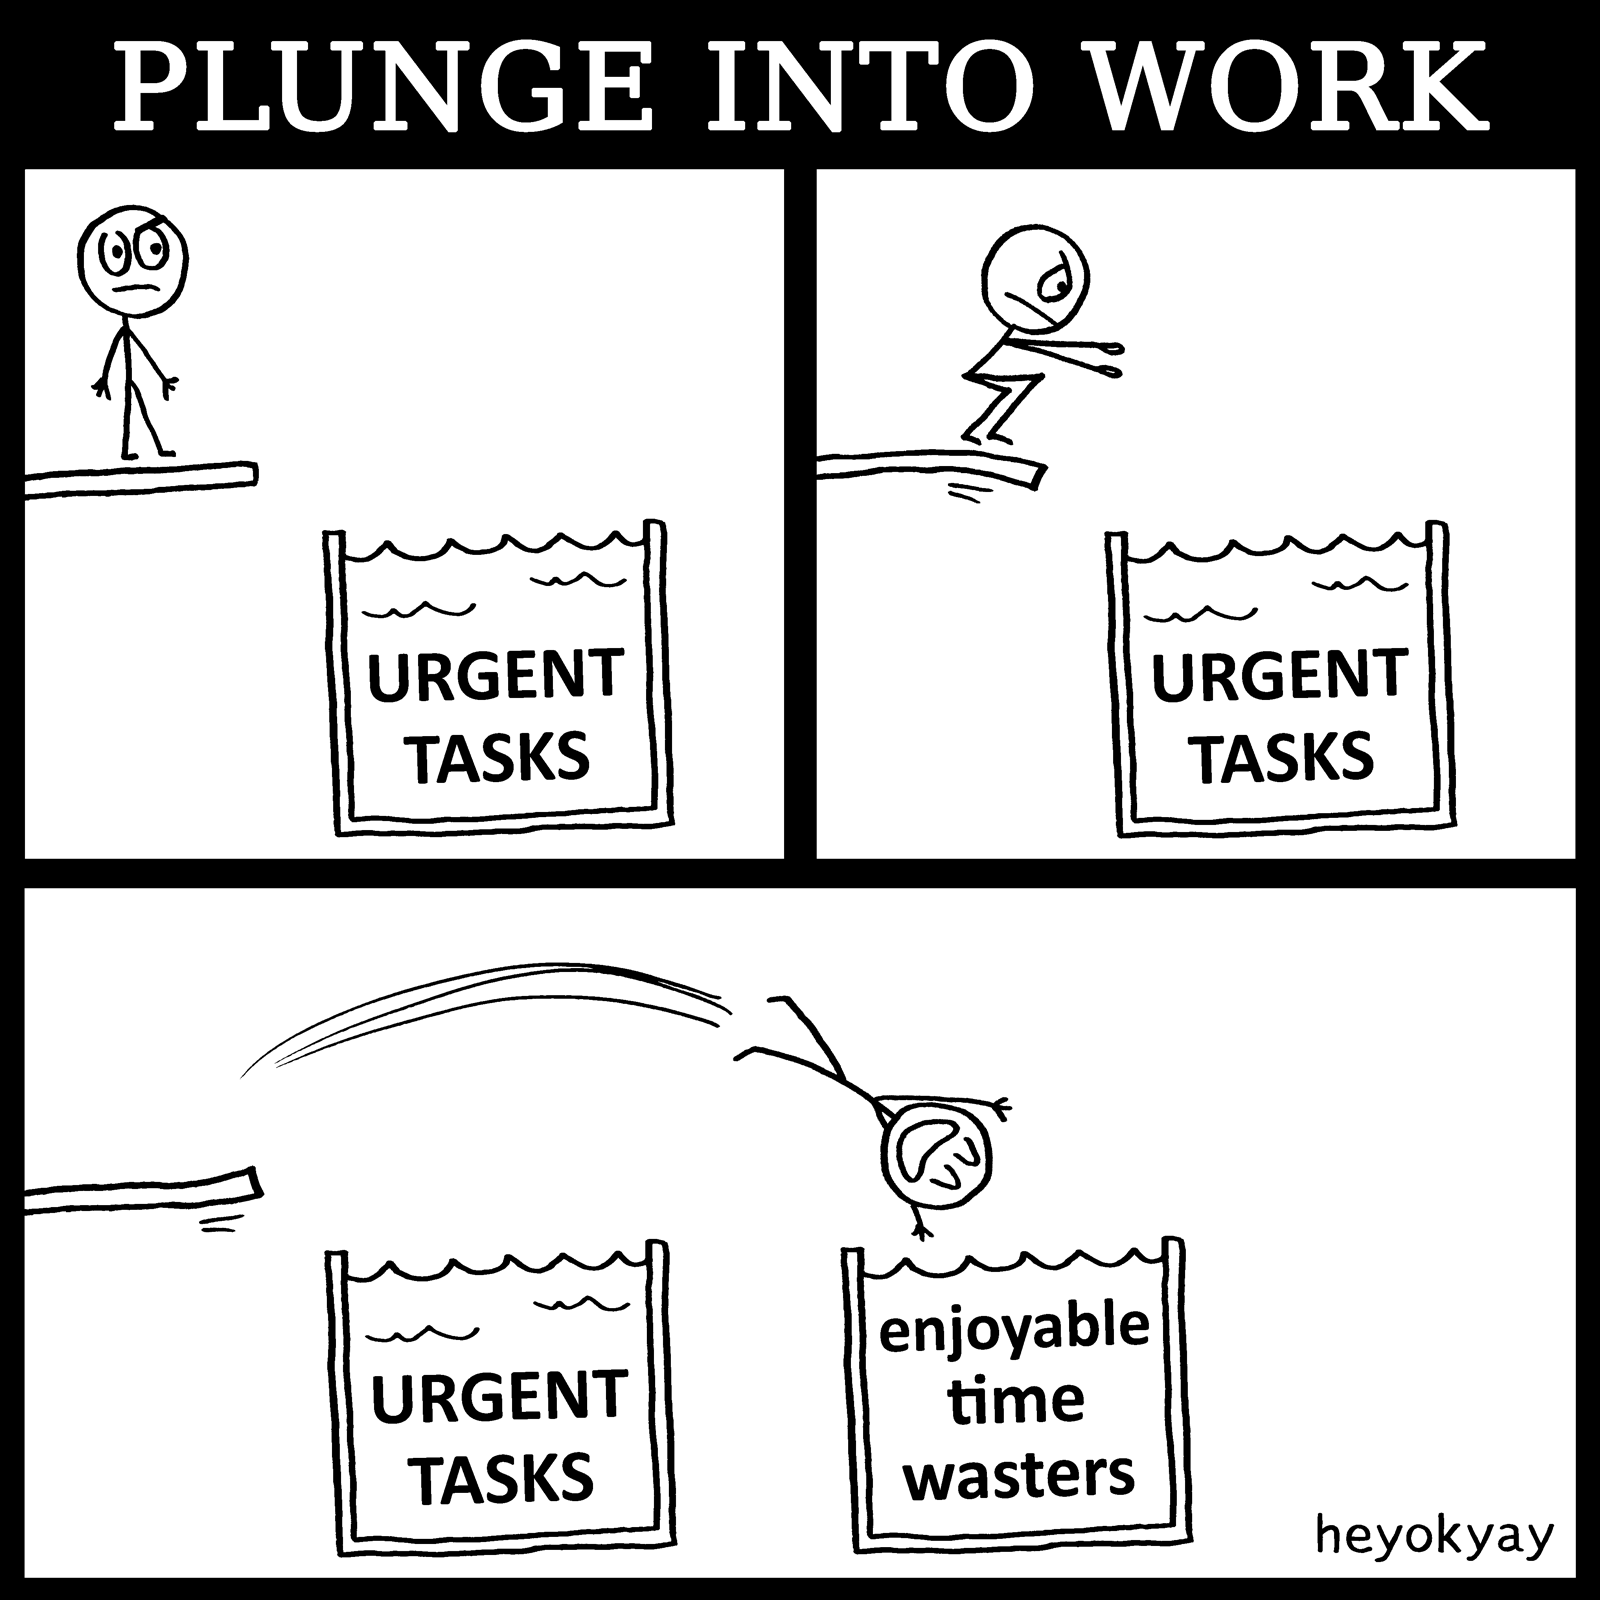 Plunge Into Work heyokyay comic